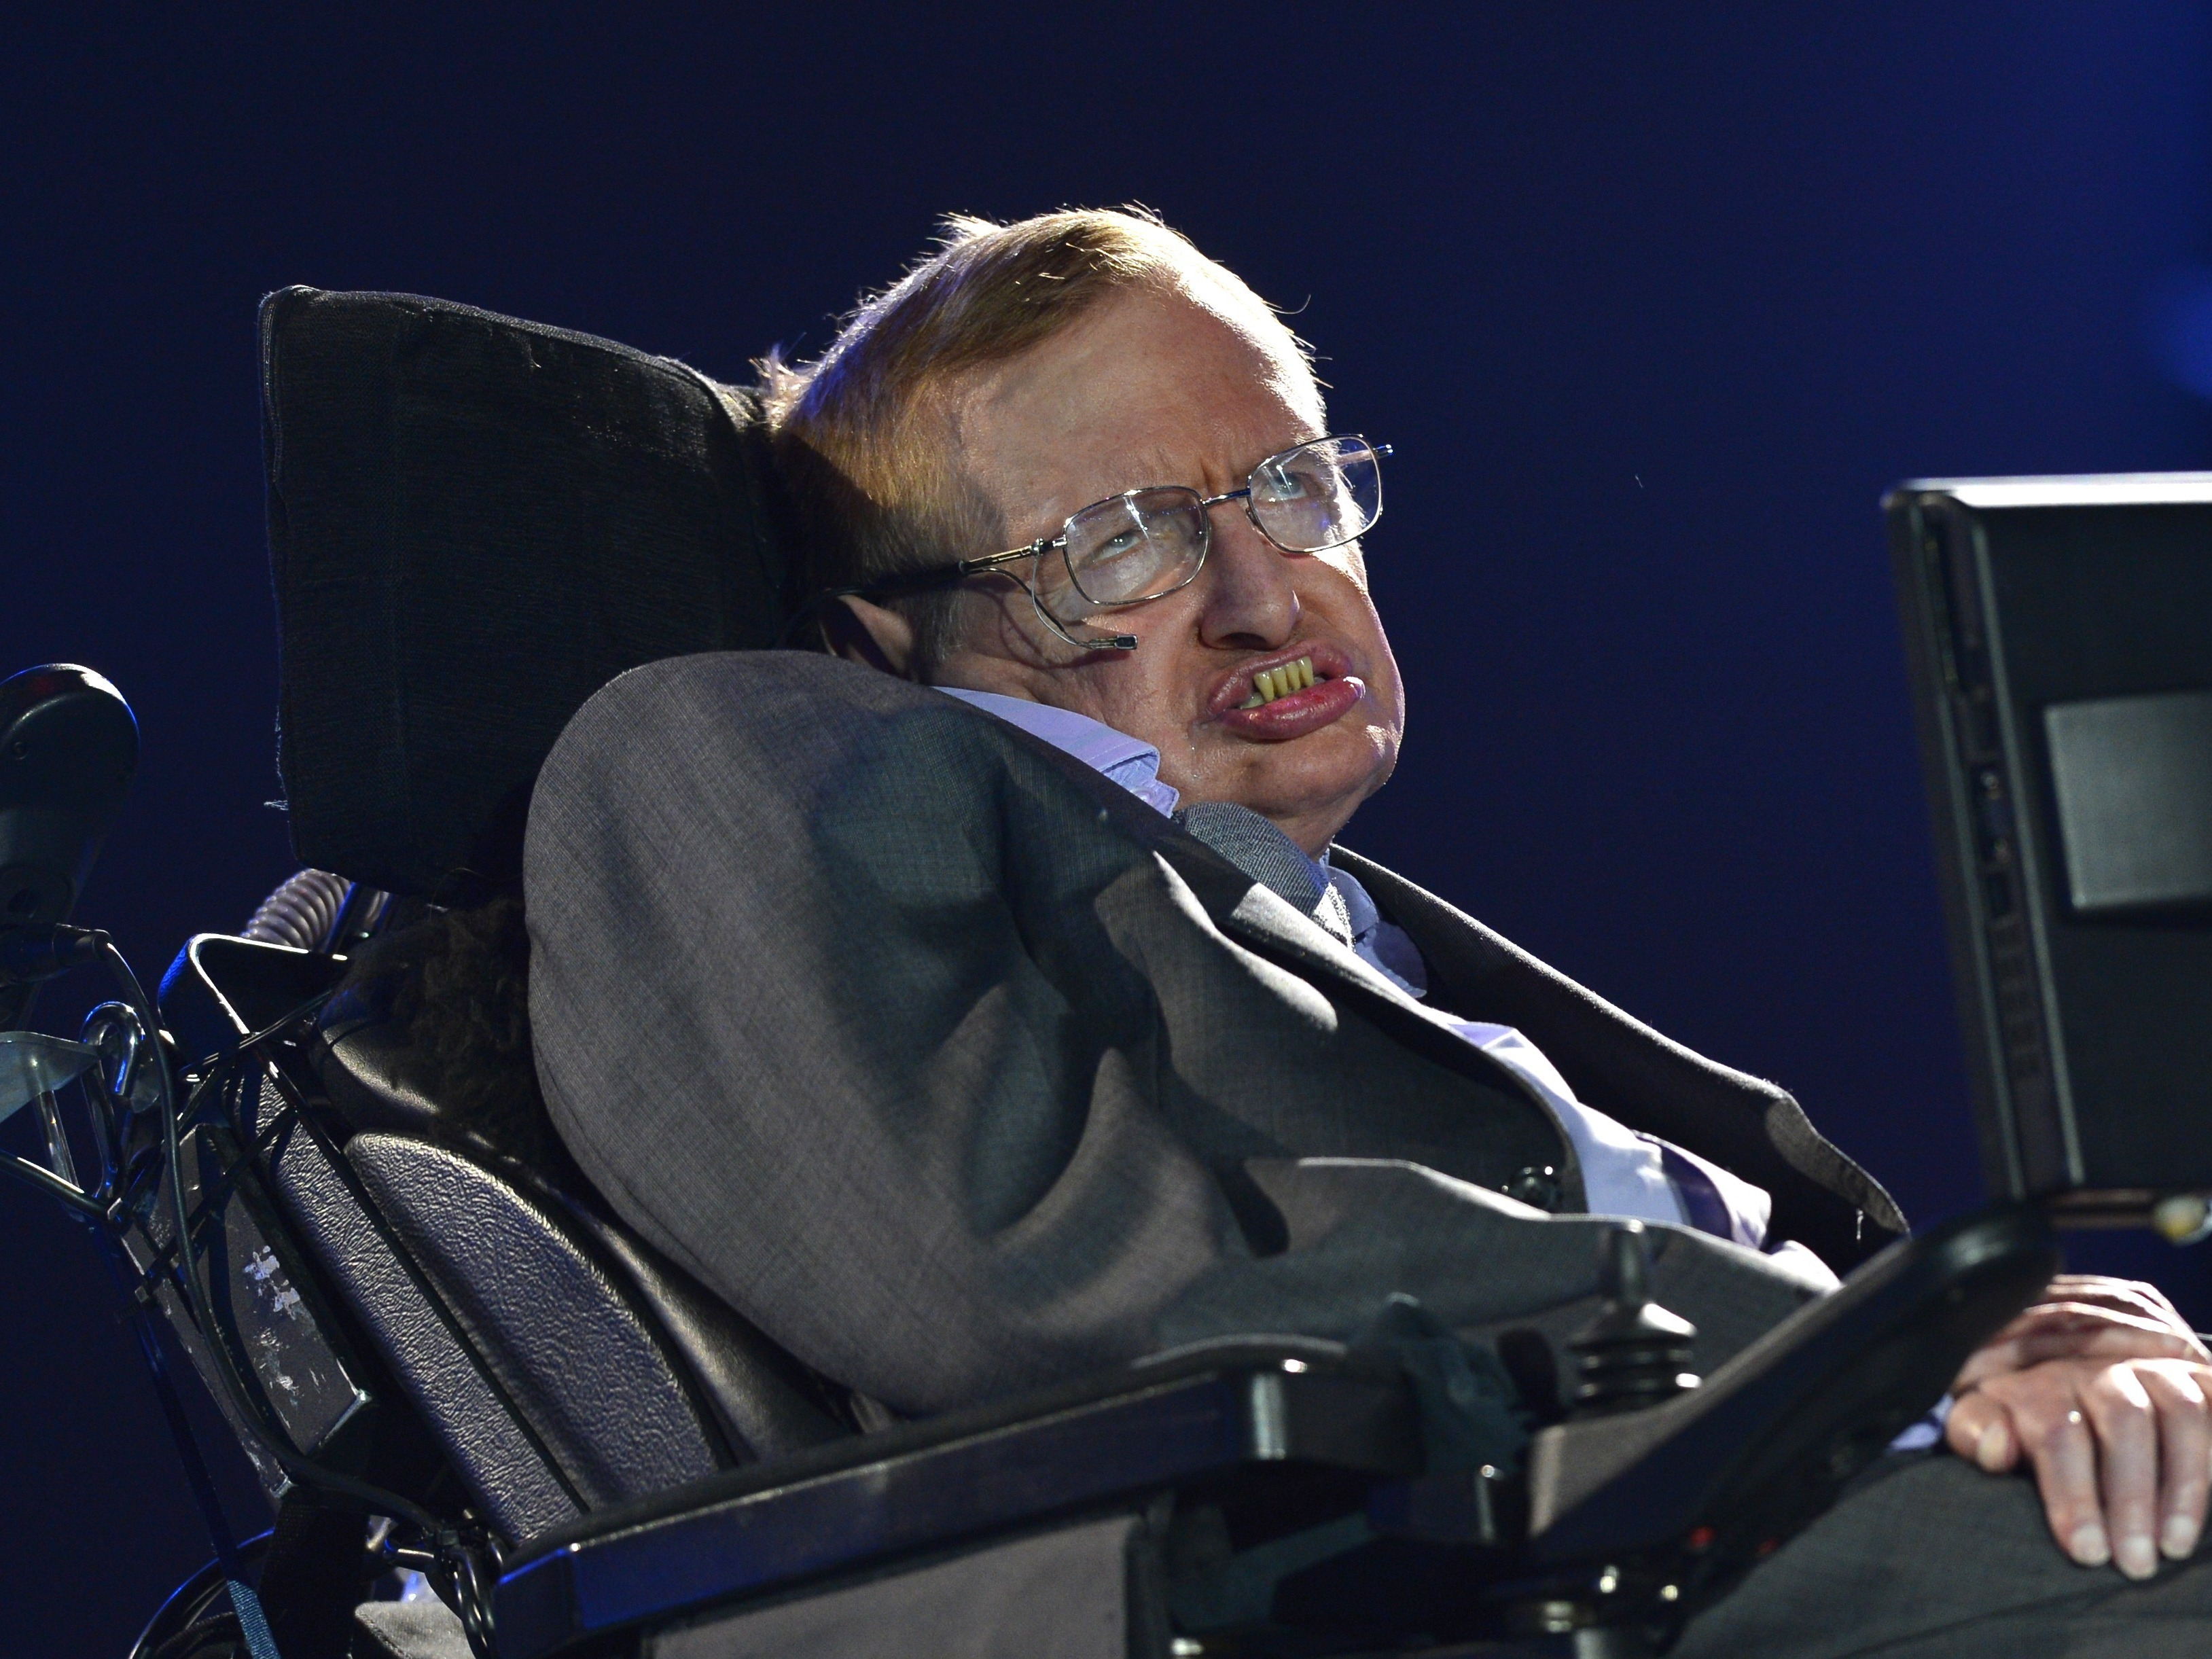 Stephen Hawking Backs Assisted Suicide For The Terminally Ill